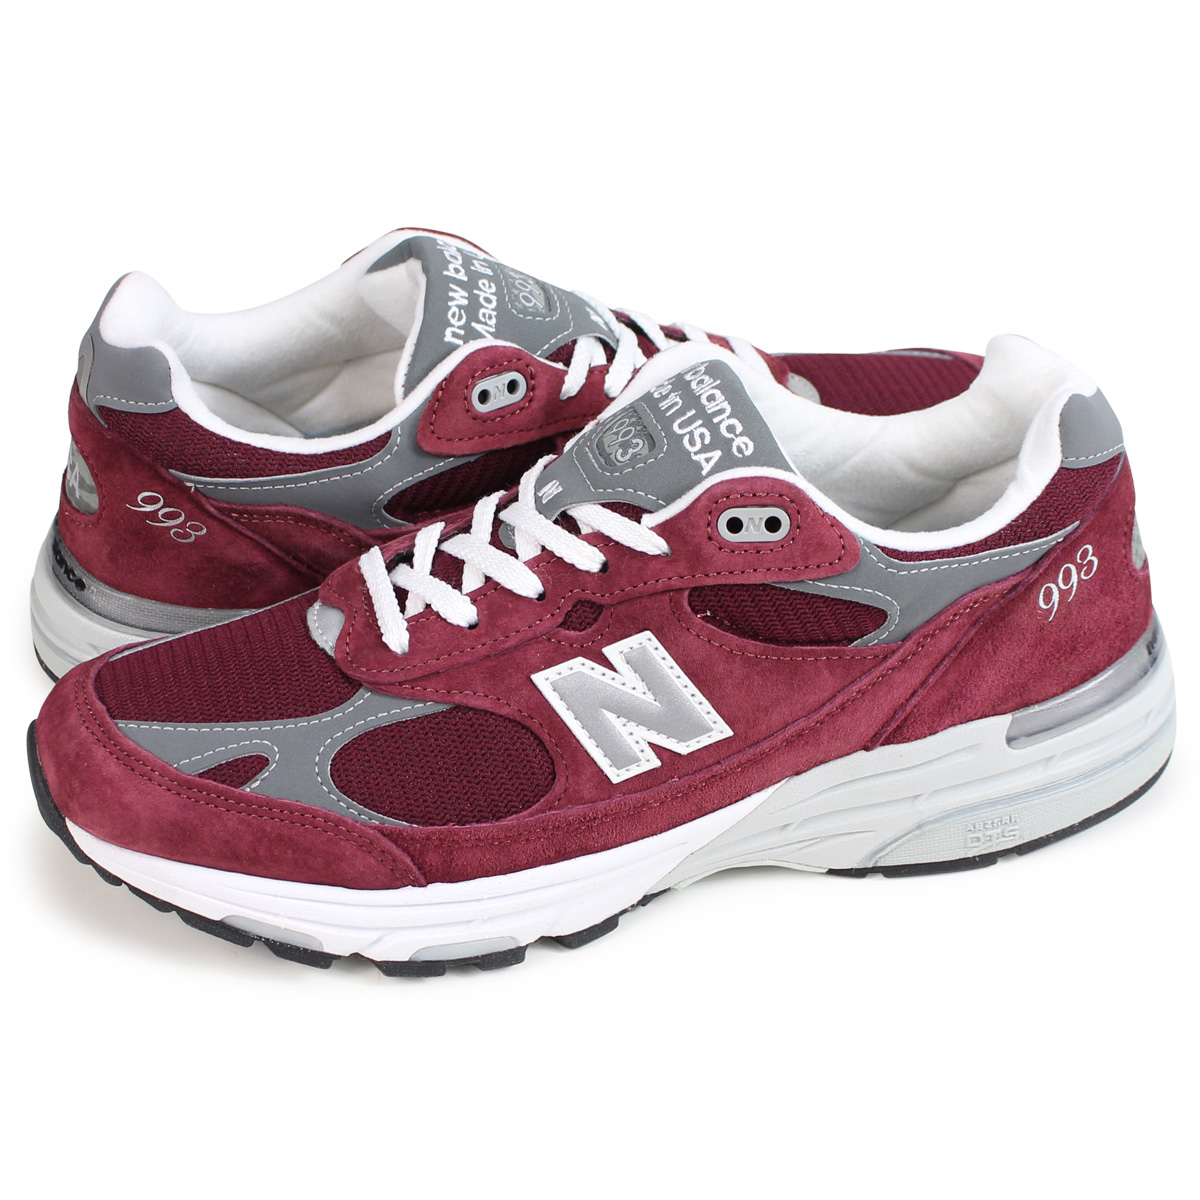 super popular afb48 a9c1f new balance MR993BU New Balance 993 men's sneakers D Wise MADE IN USA bar  Gandhi [1810]